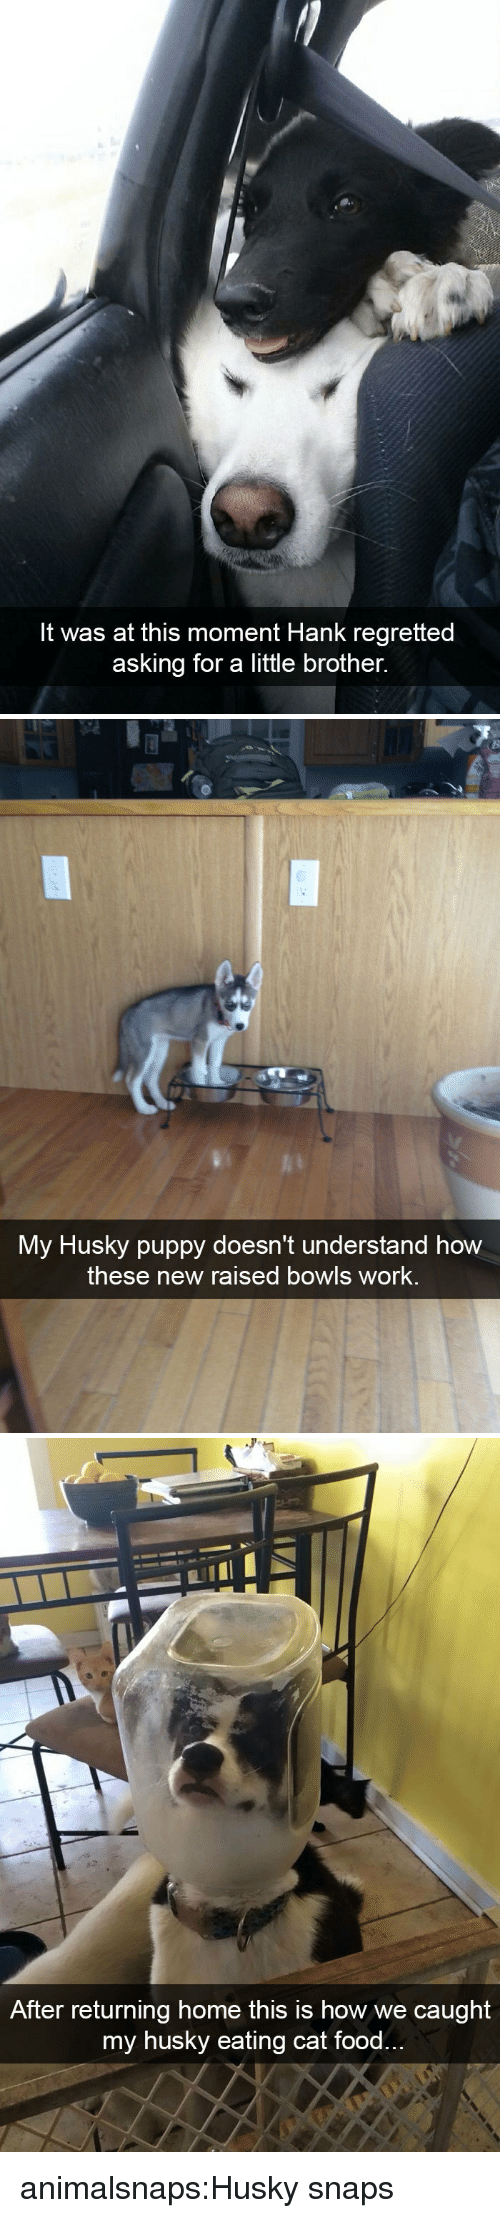 Food, Target, and Tumblr: It was at this moment Hank regretted  asking for a little brother.   My Husky puppy doesn't understand how  these new raised bowls work.   After returning home this is how we caught  my husky eating cat food animalsnaps:Husky snaps